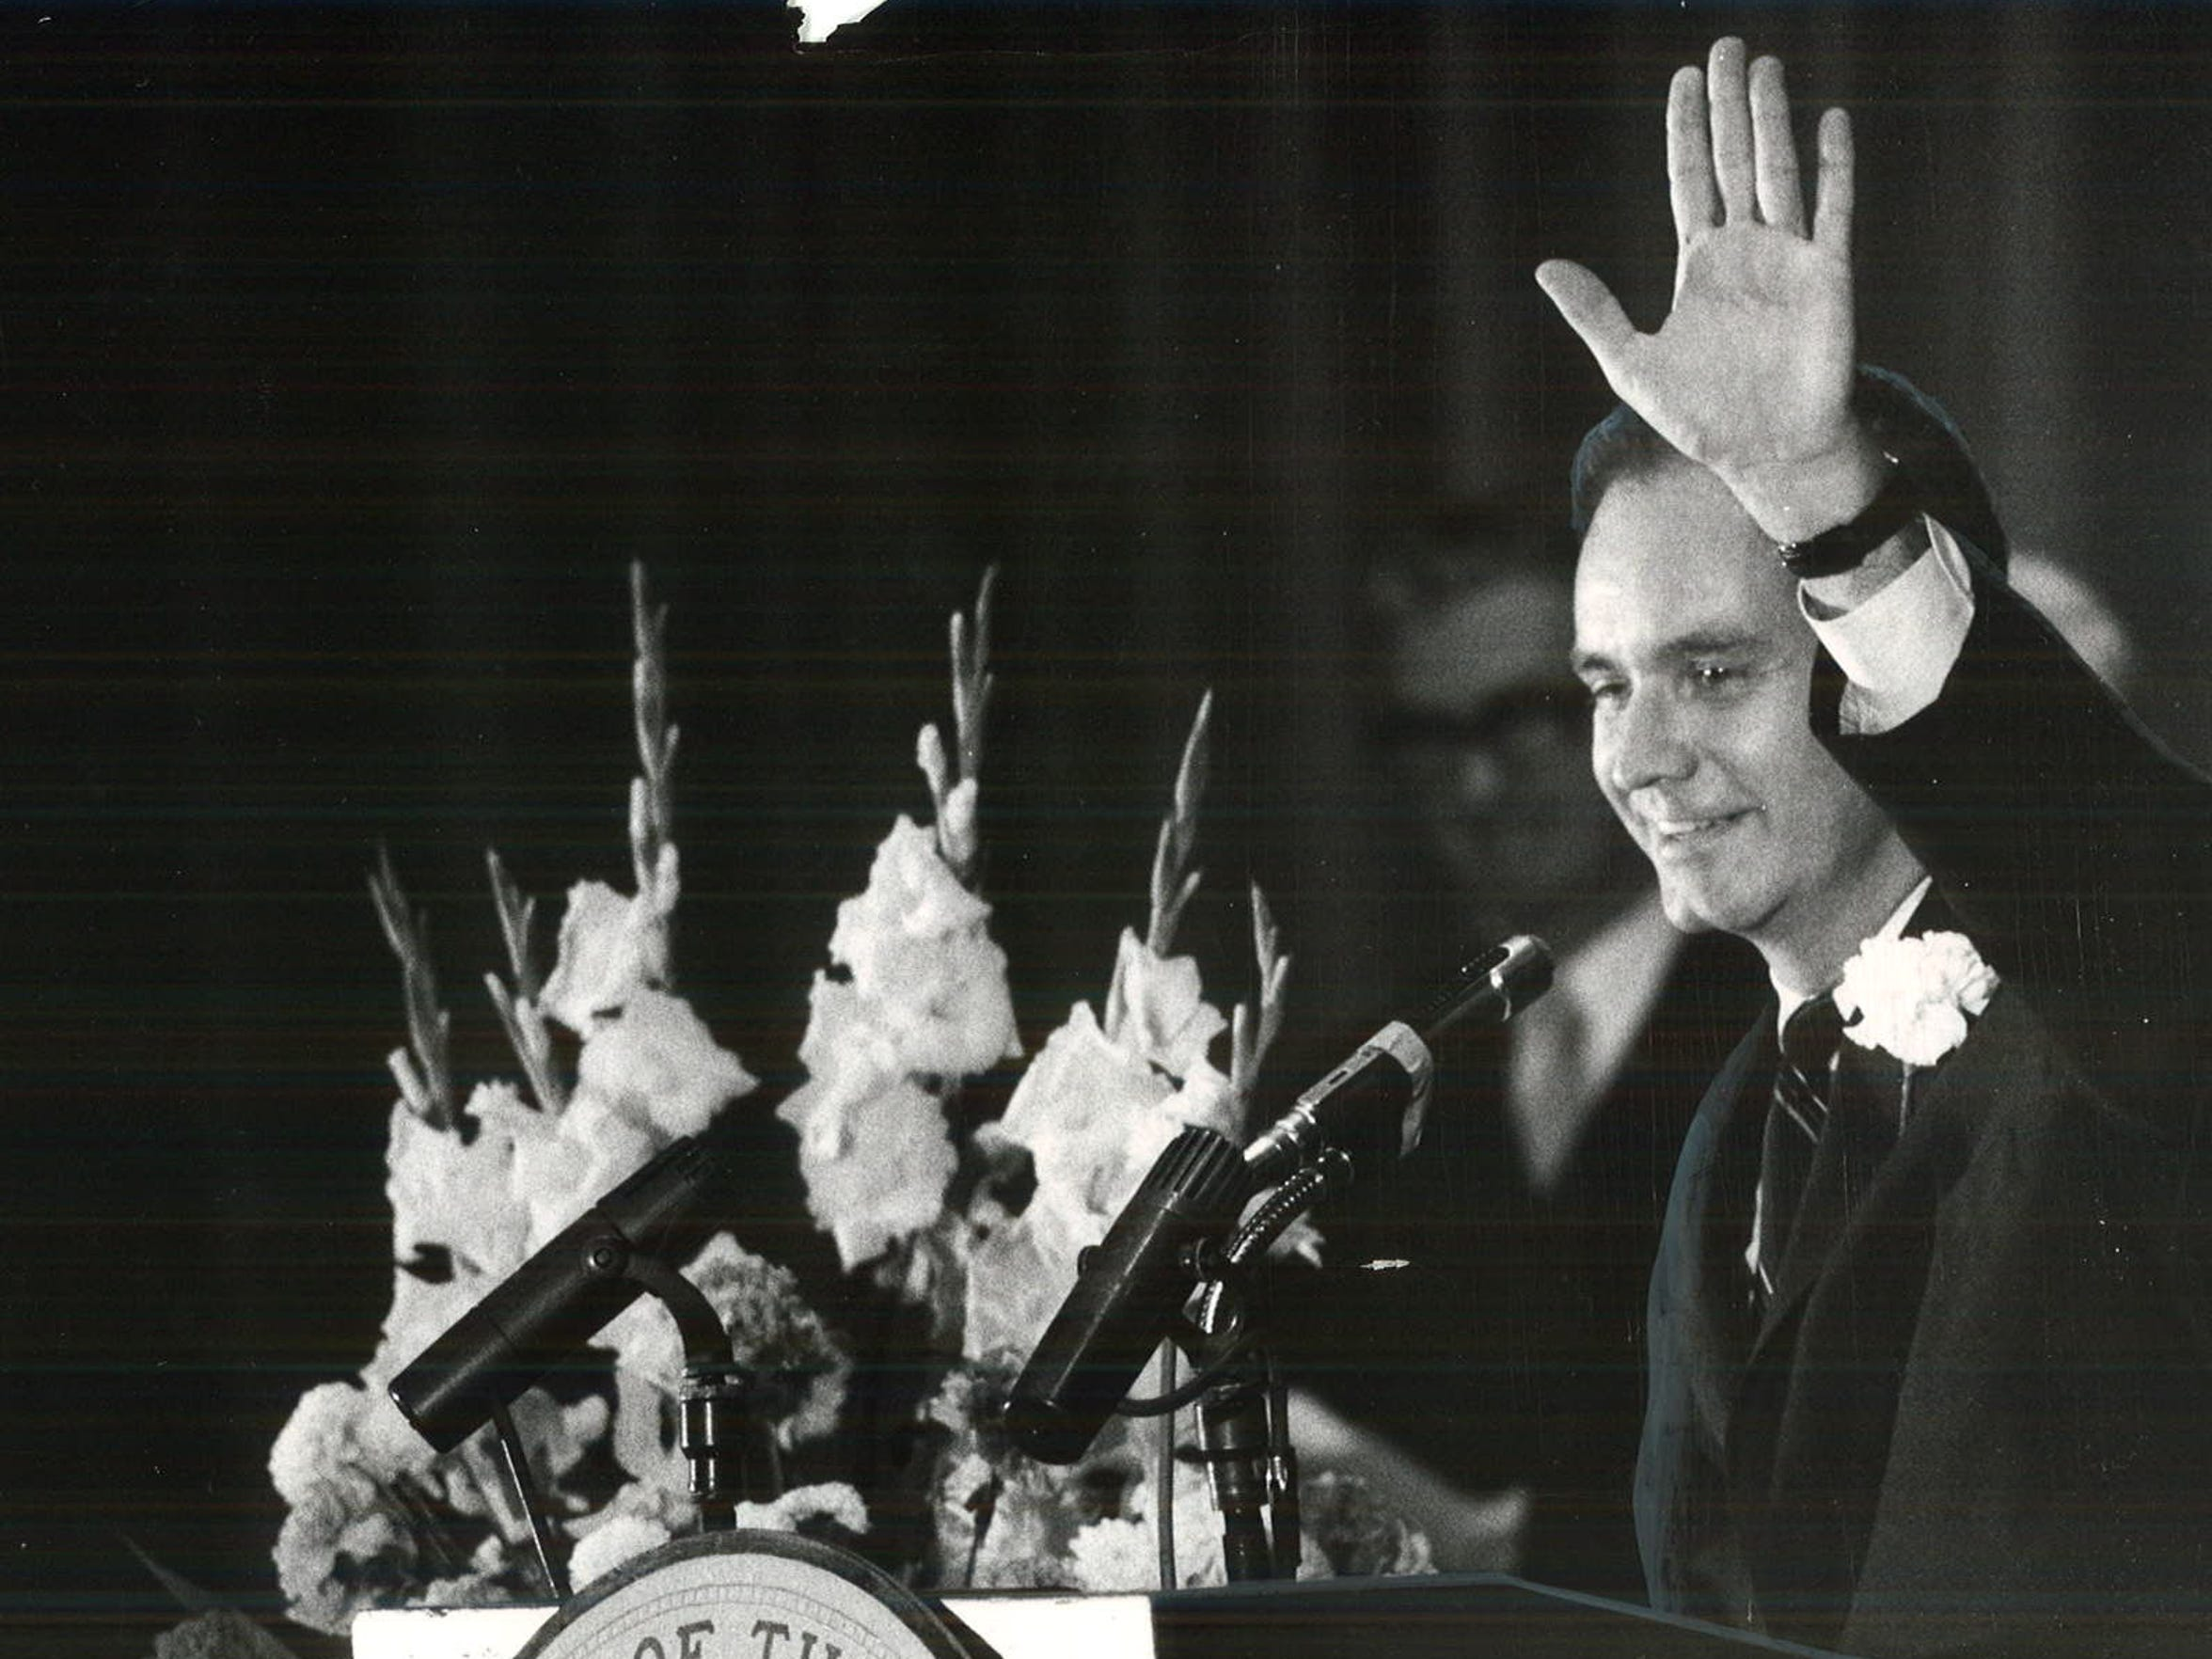 From 1969: Iowa Gov. Robert Ray waves to the crowd